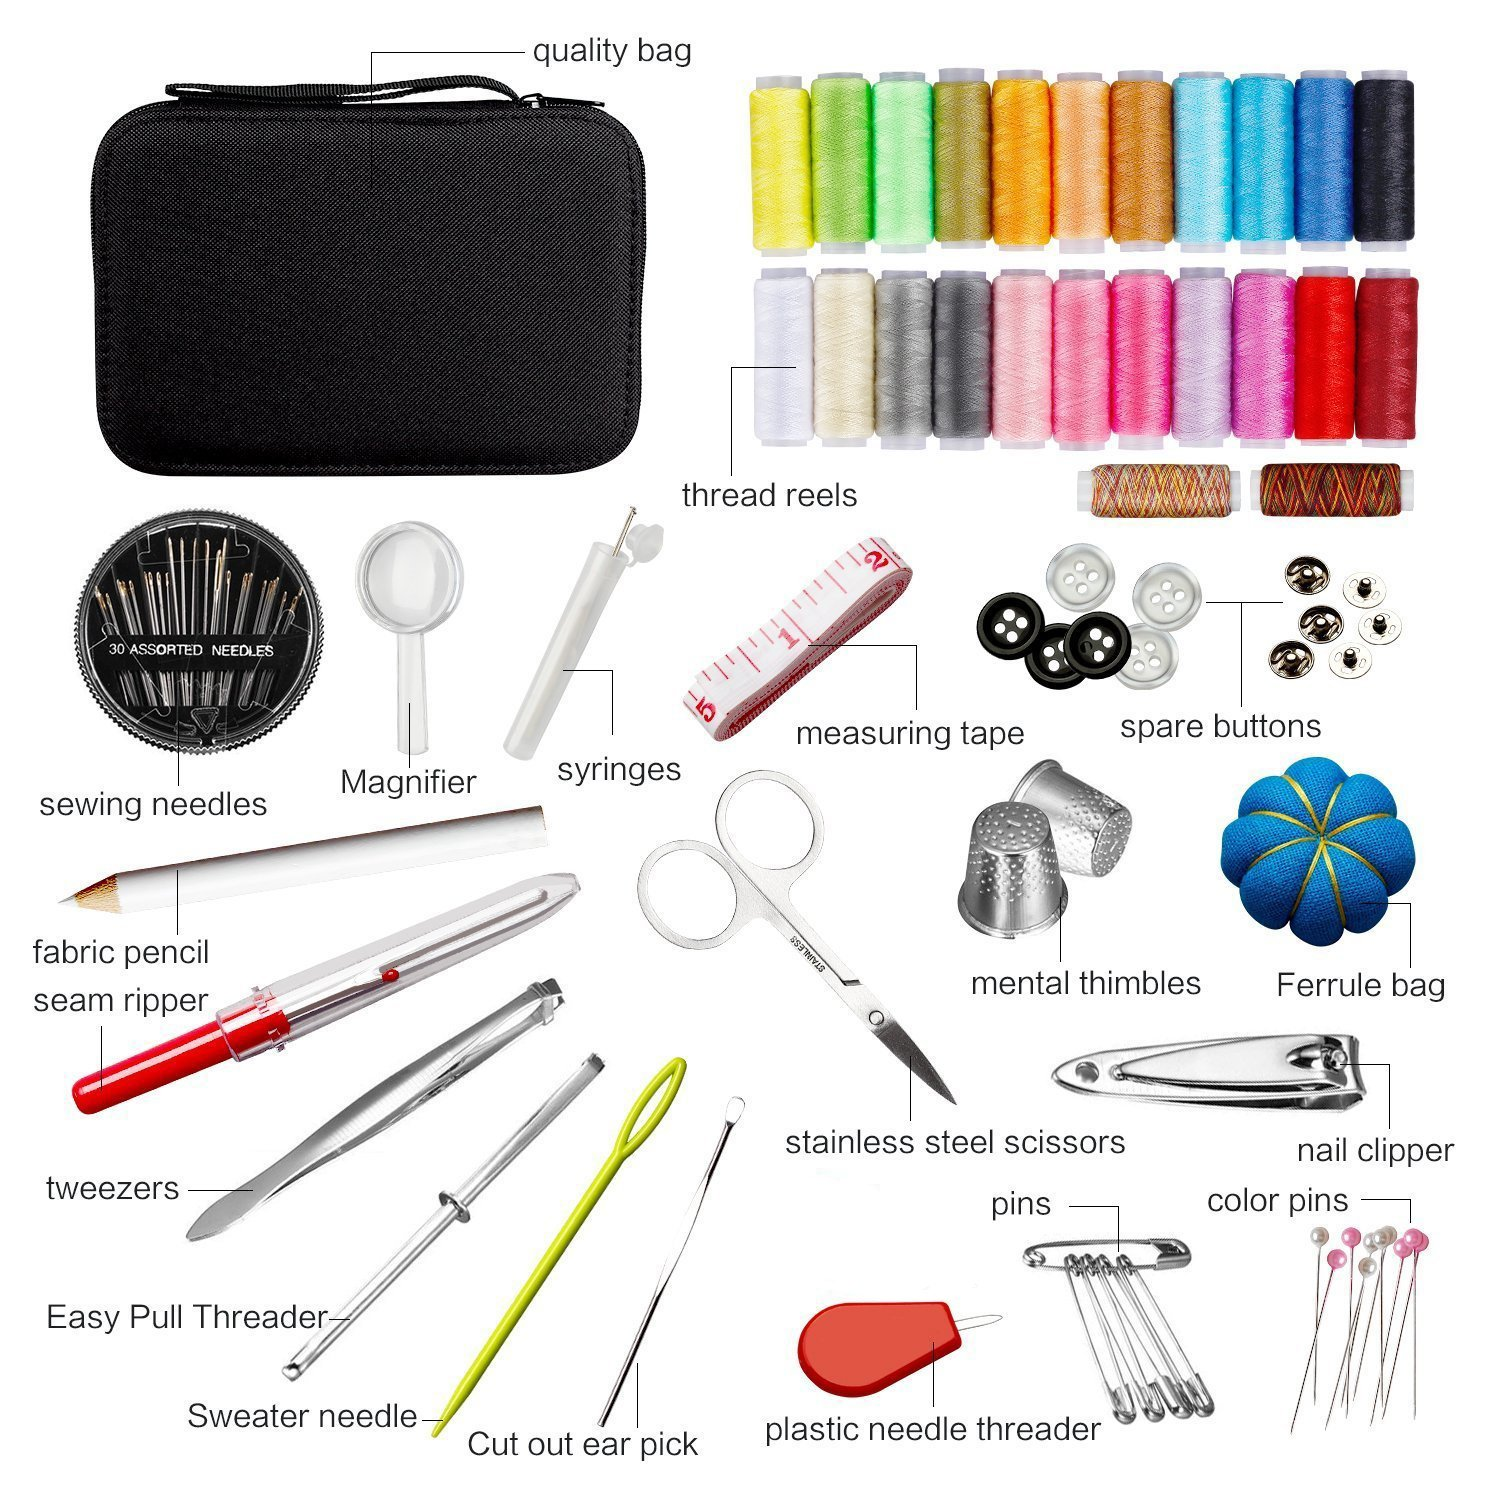 DIY Sewing KIT Beginners Home Portable Sewing Kit with Scissors, Thimble, Thread, Needles, Sewing Supplie set